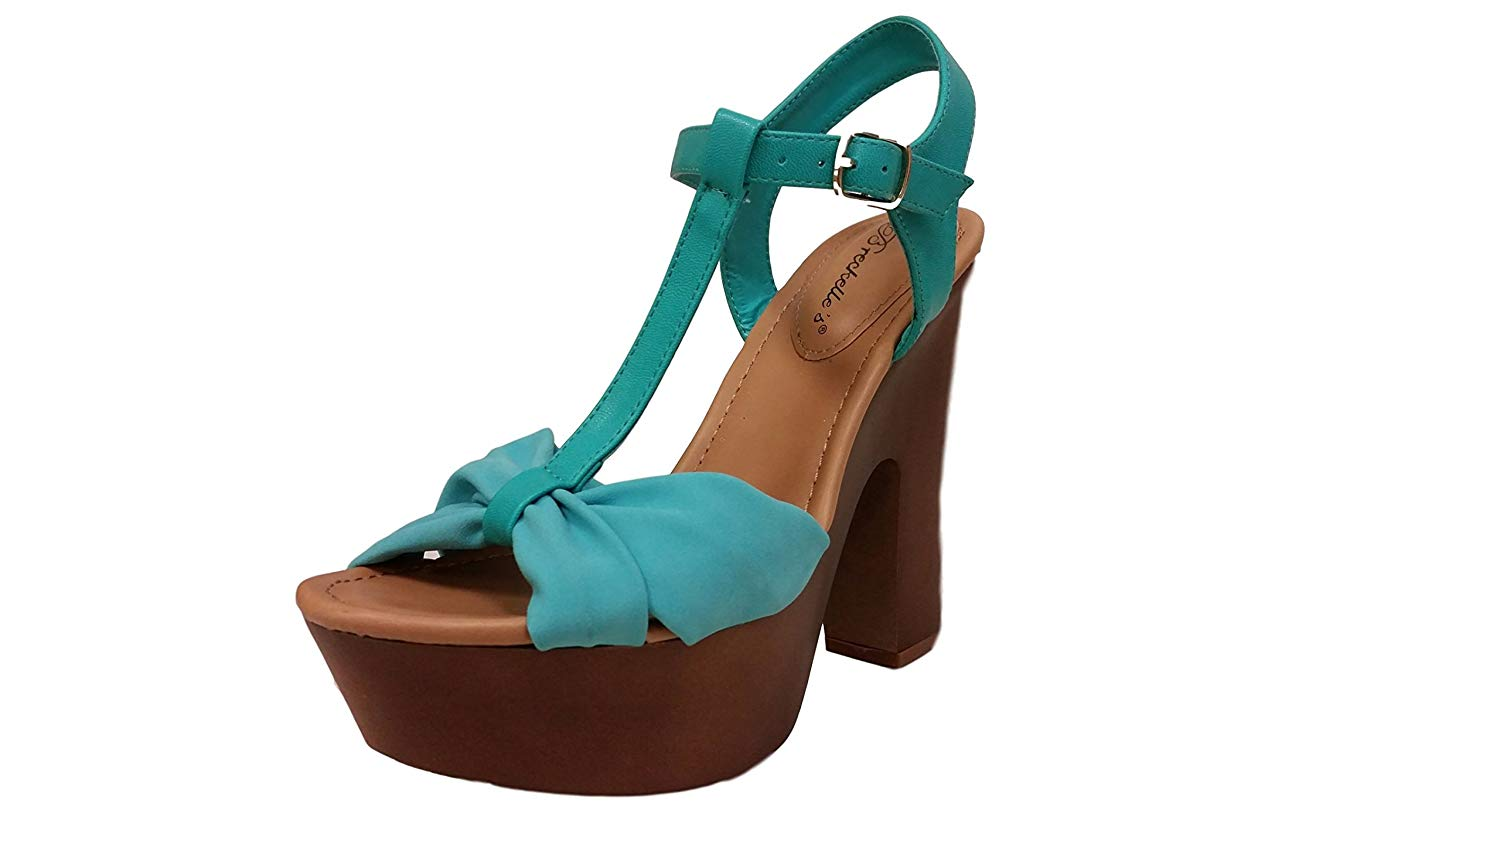 a73a0fc3aaef Get Quotations · Breckelle s Women s T-Strap Strappy Bow Open Toe Chunky  Platform Heel Sandal